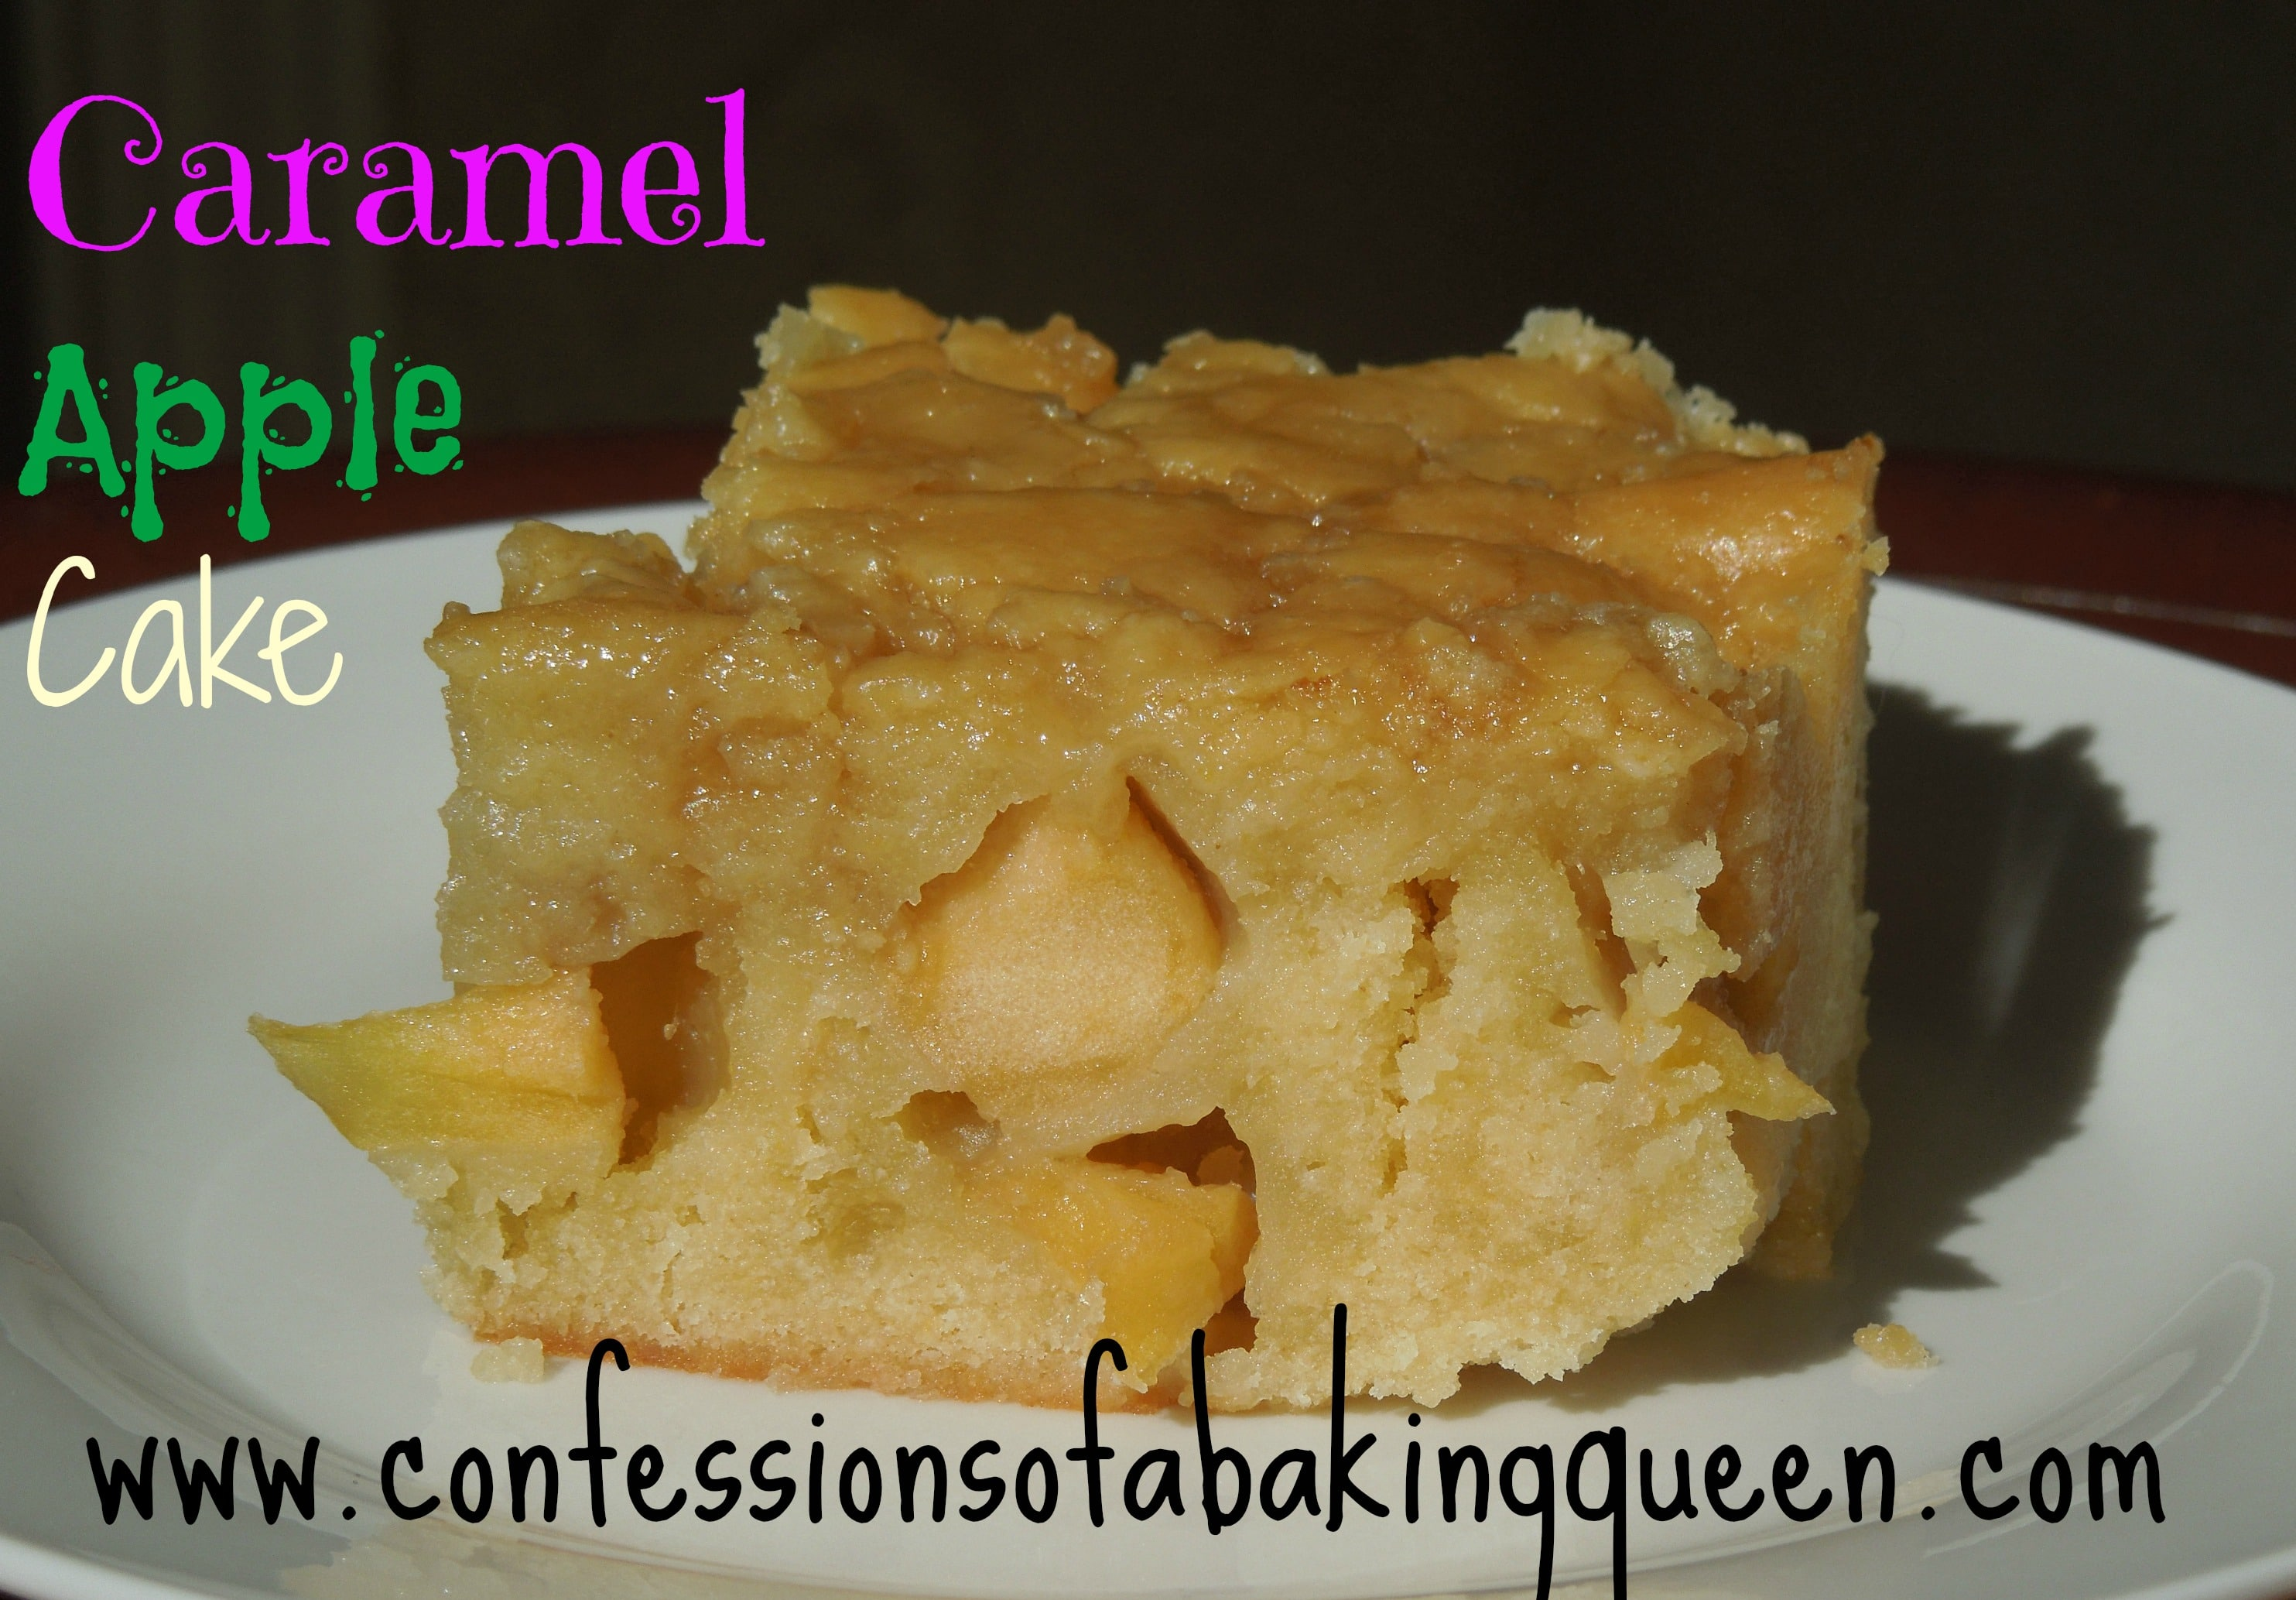 Caramel Apple Cake www.confessionsofabakingqueen.com